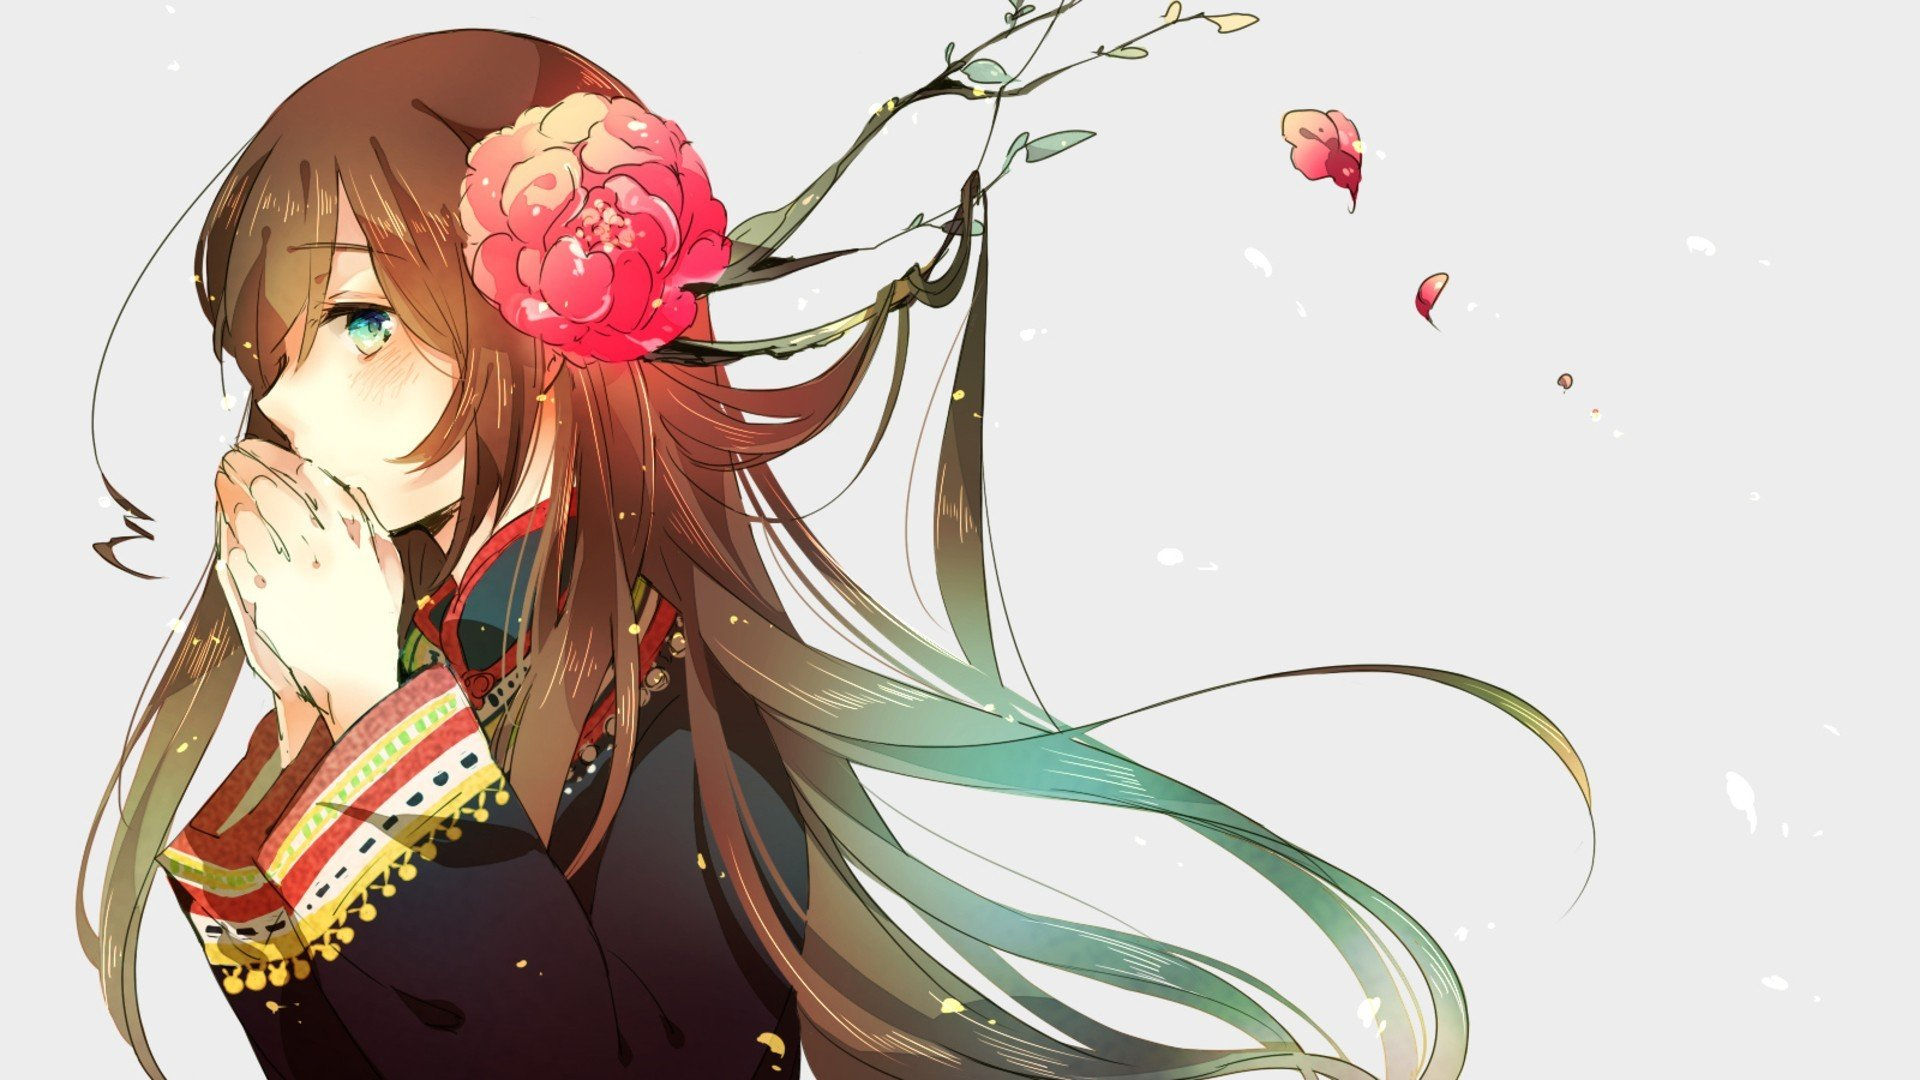 Free Download Anime Girl Wallpaper Id 151165 Hd 1920x1080 For Pc